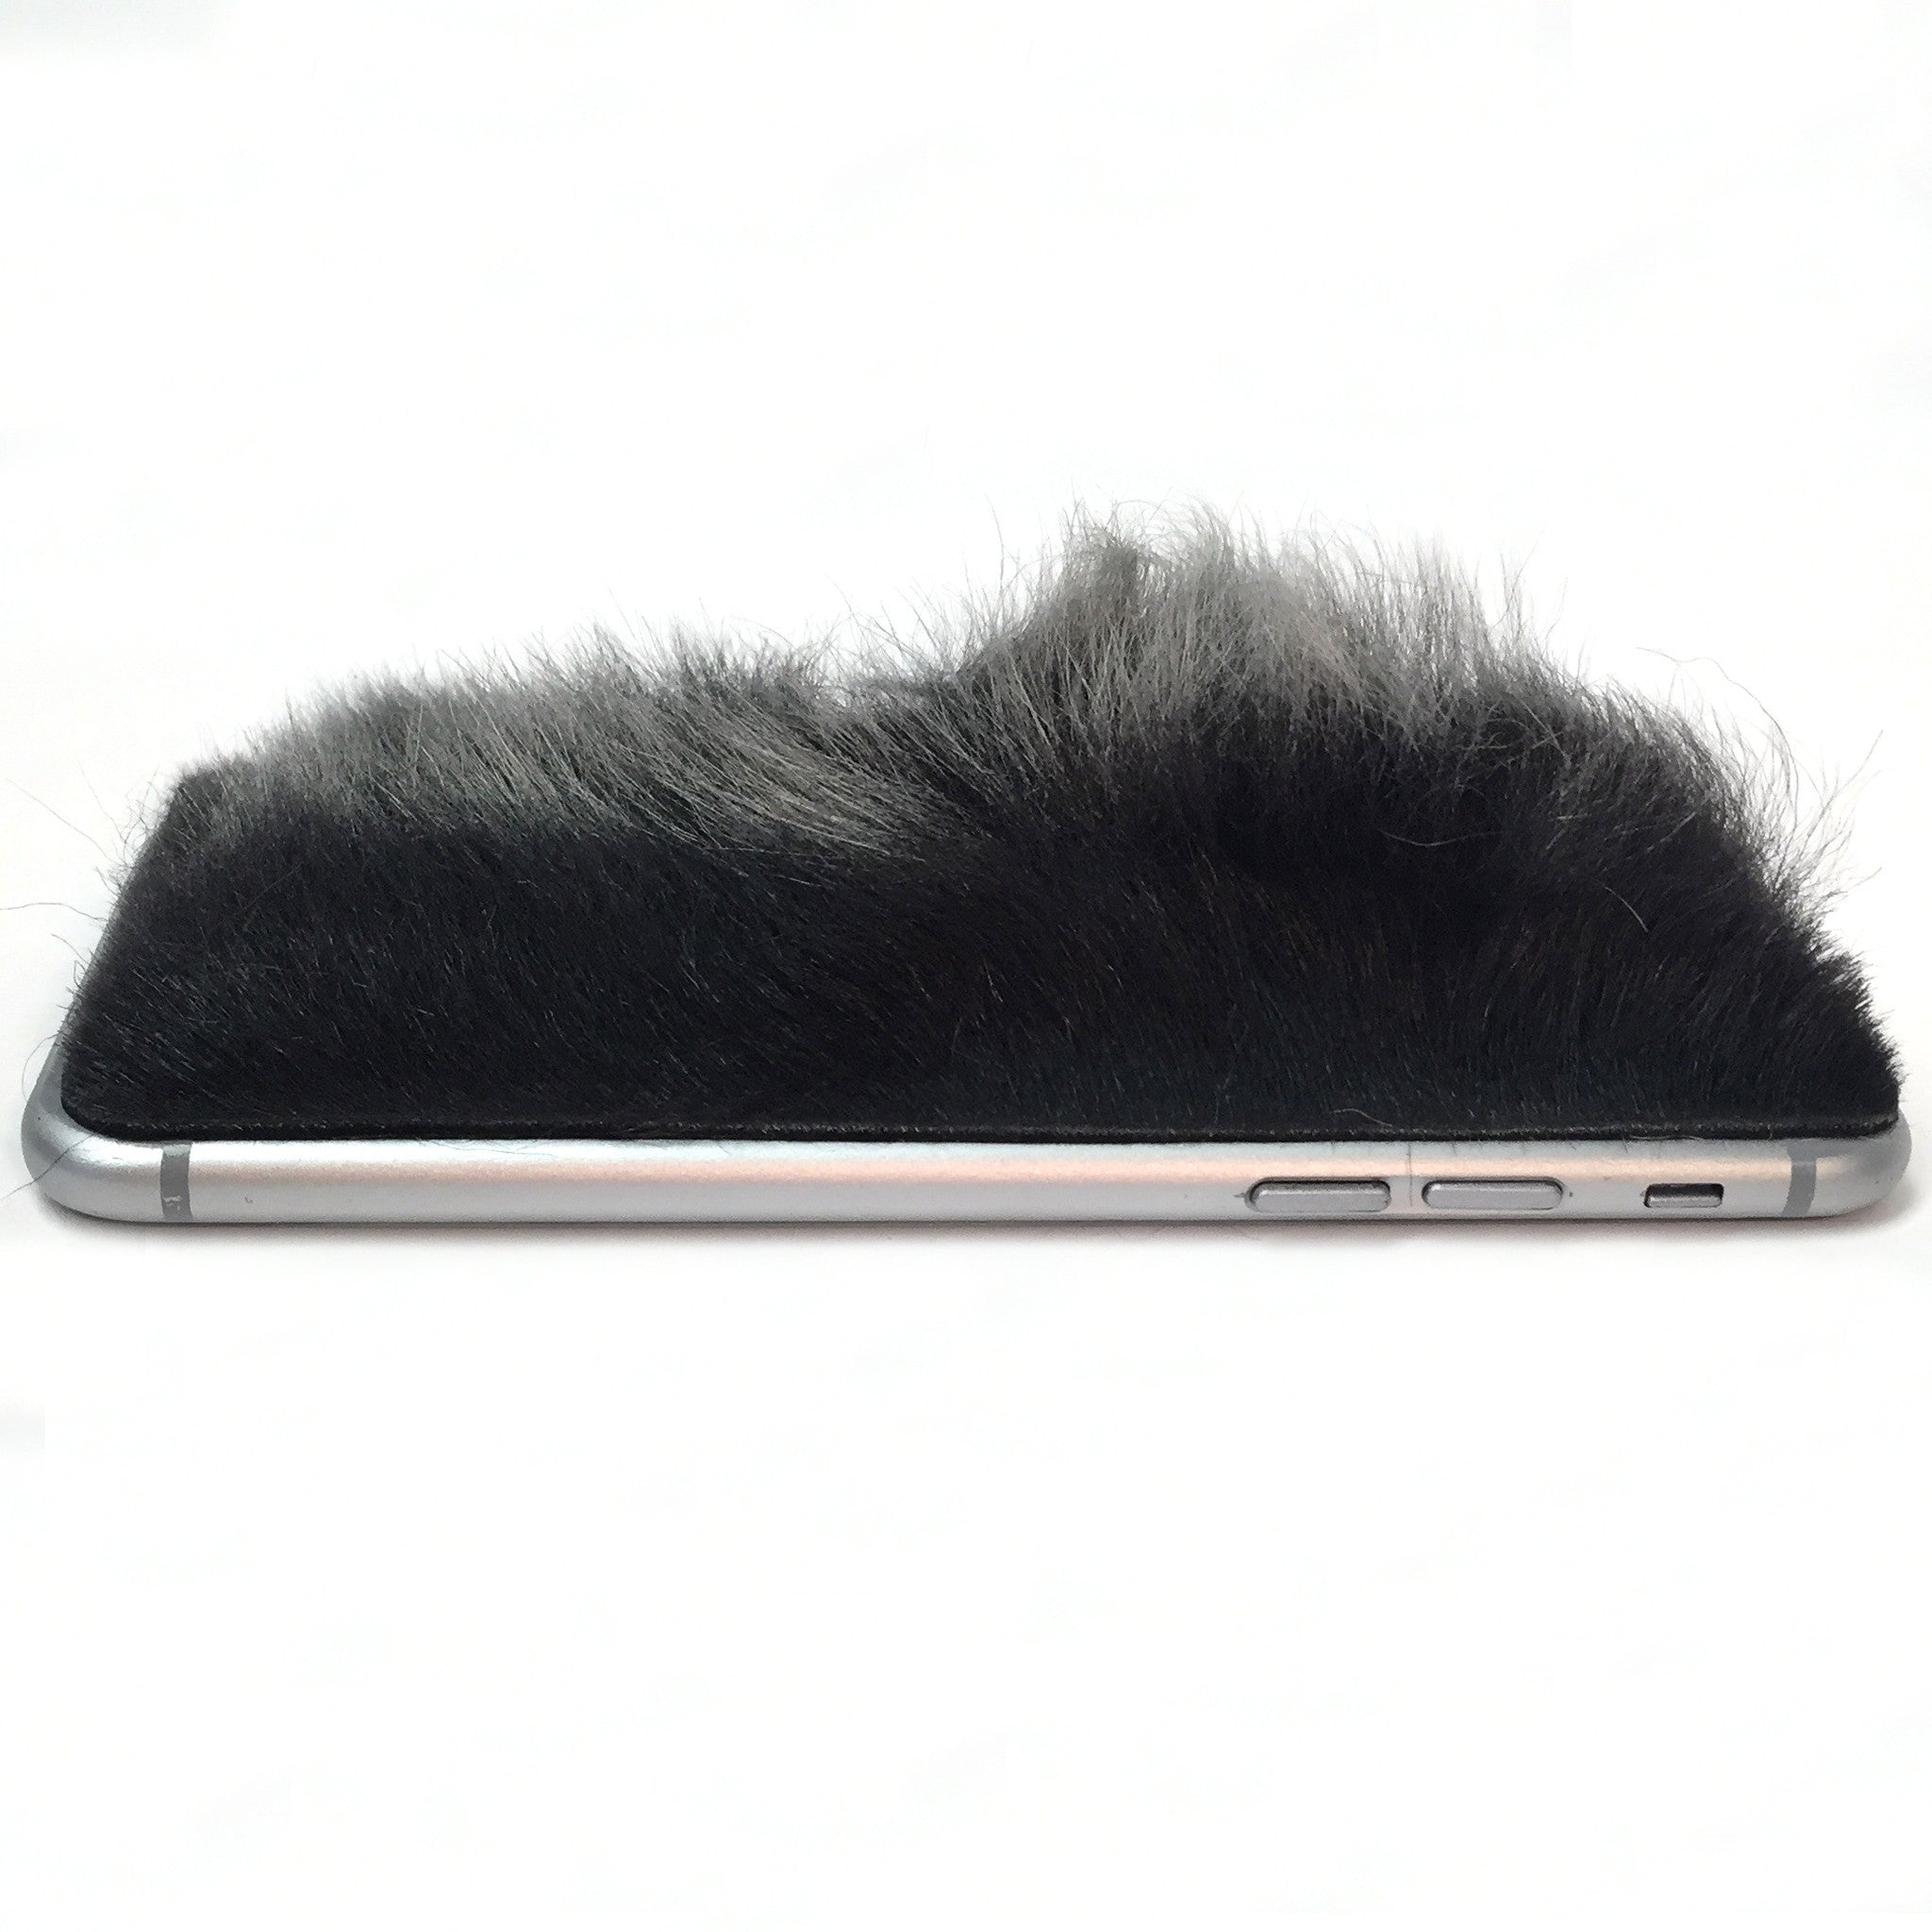 Two Tone Black Sheep Fur iPhone 8 Leather Skin